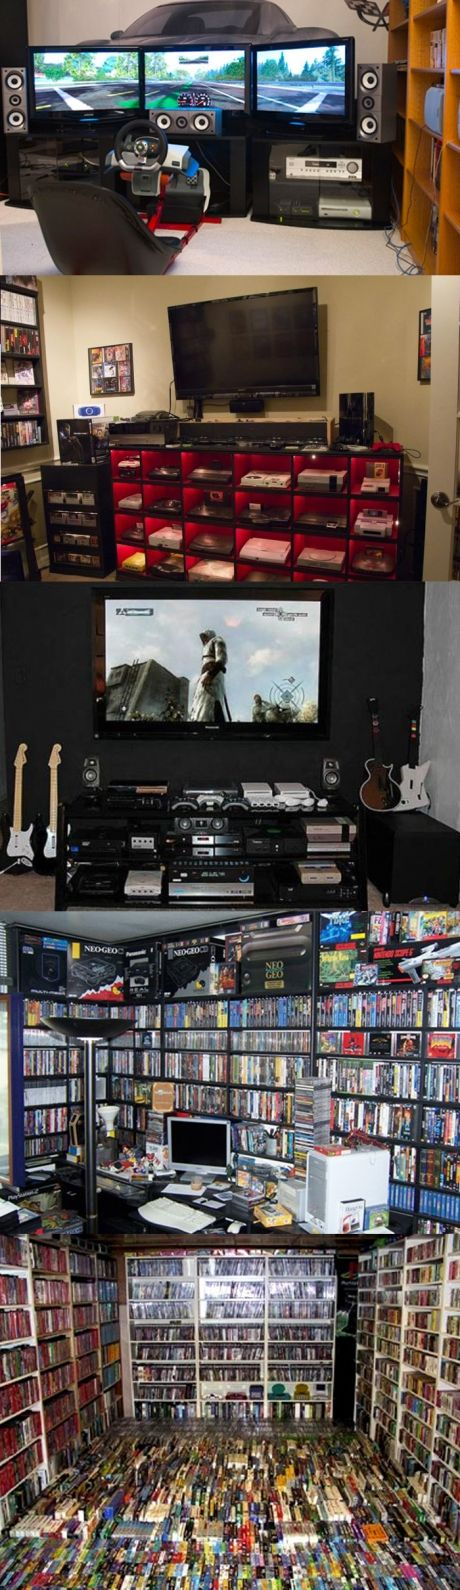 The most amazing gaming setups and collections you'll ever see (via: http://gamewise.co/brainwaves/366/The-most-amazing-gaming-setups-and-collections-youll-ever-see)